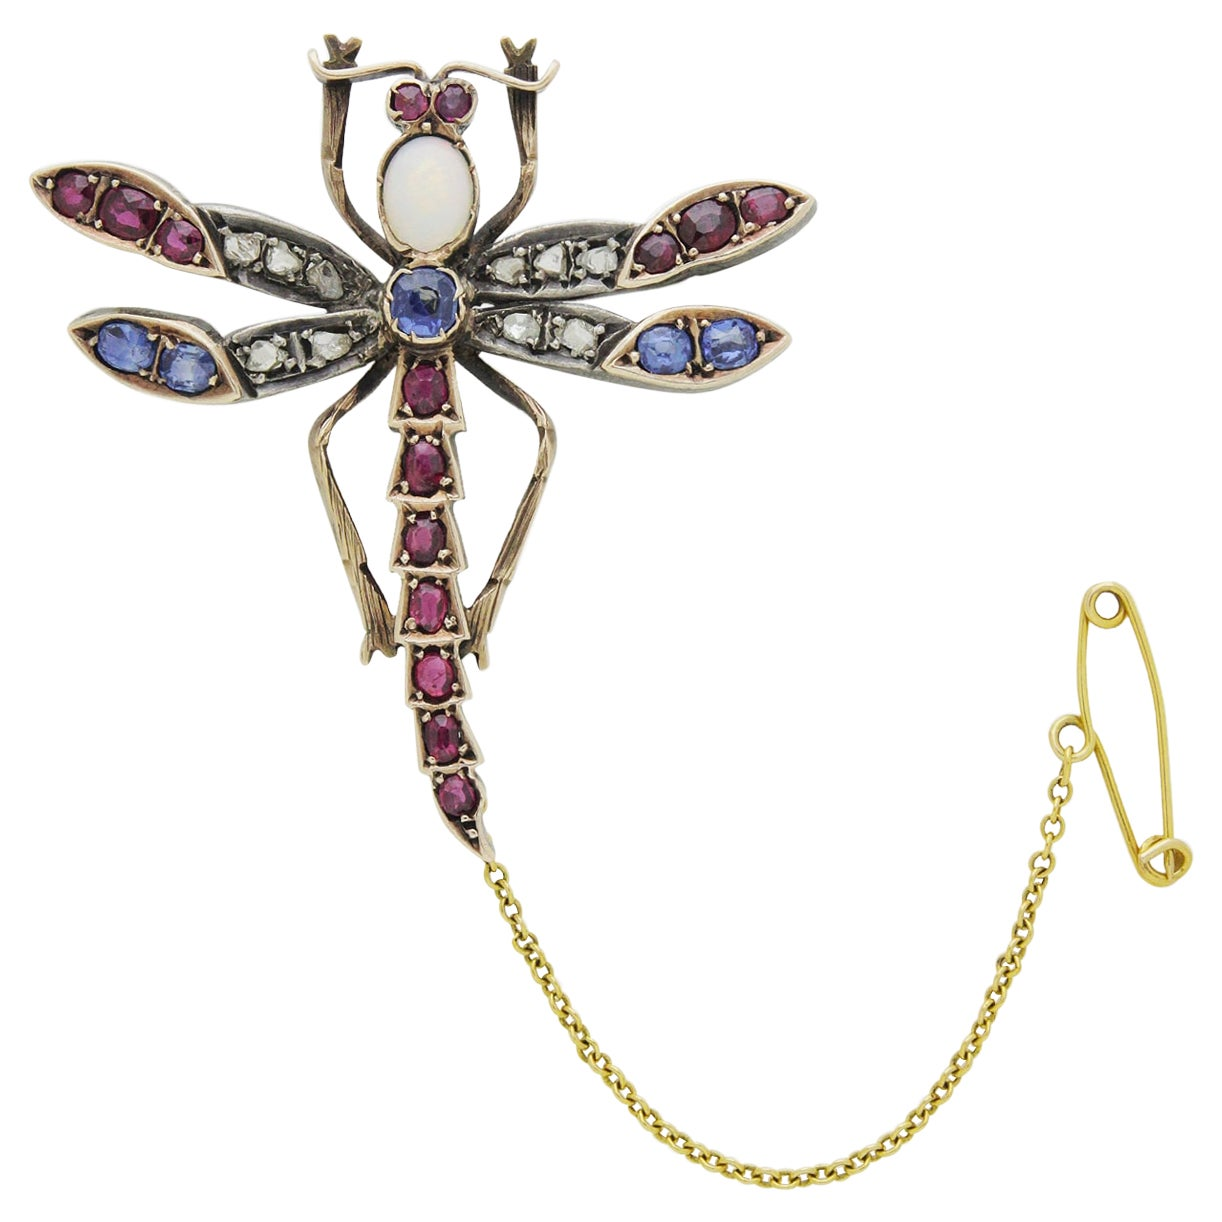 Opal, Ruby, Diamond, and Sapphire Dragonfly Brooch